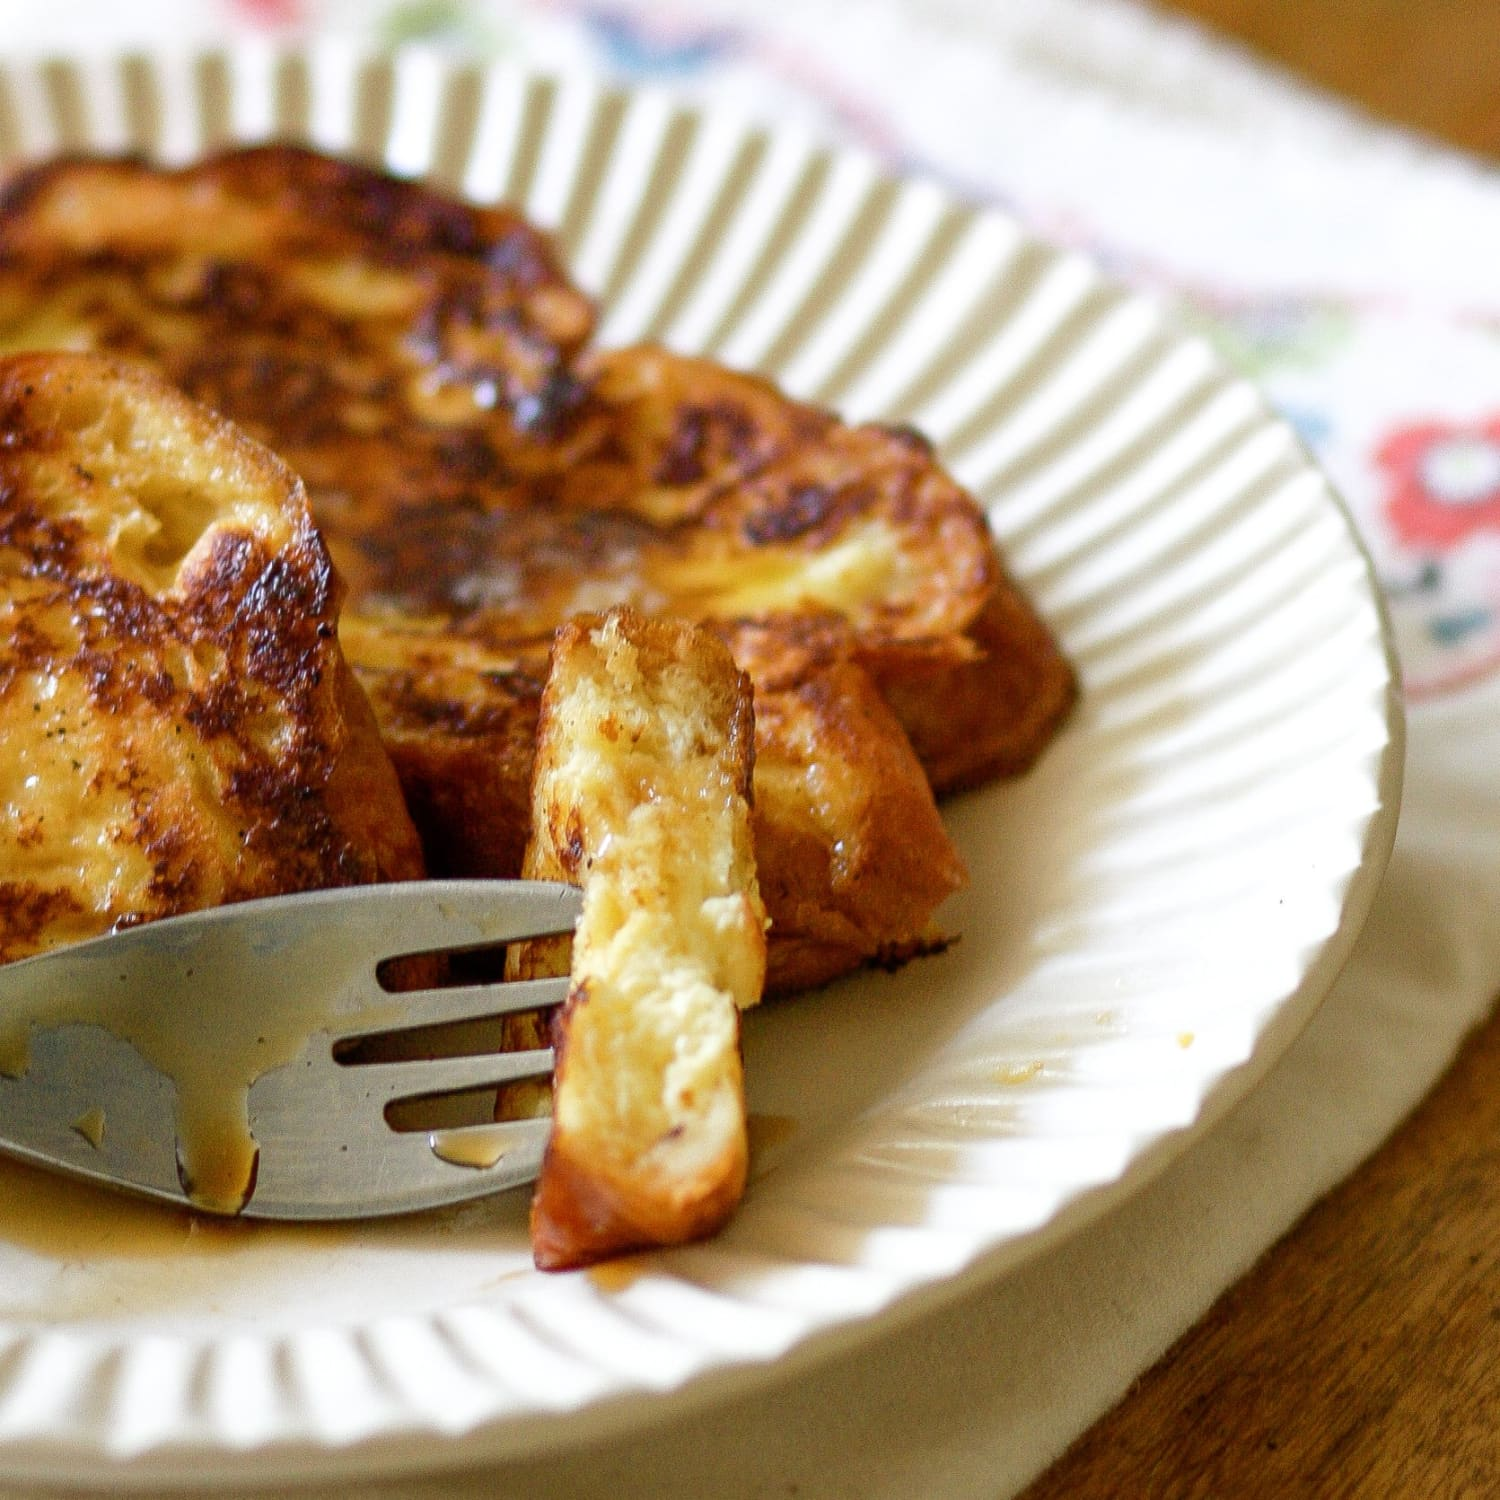 How To Make French Toast at Home - Recipe | Kitchn